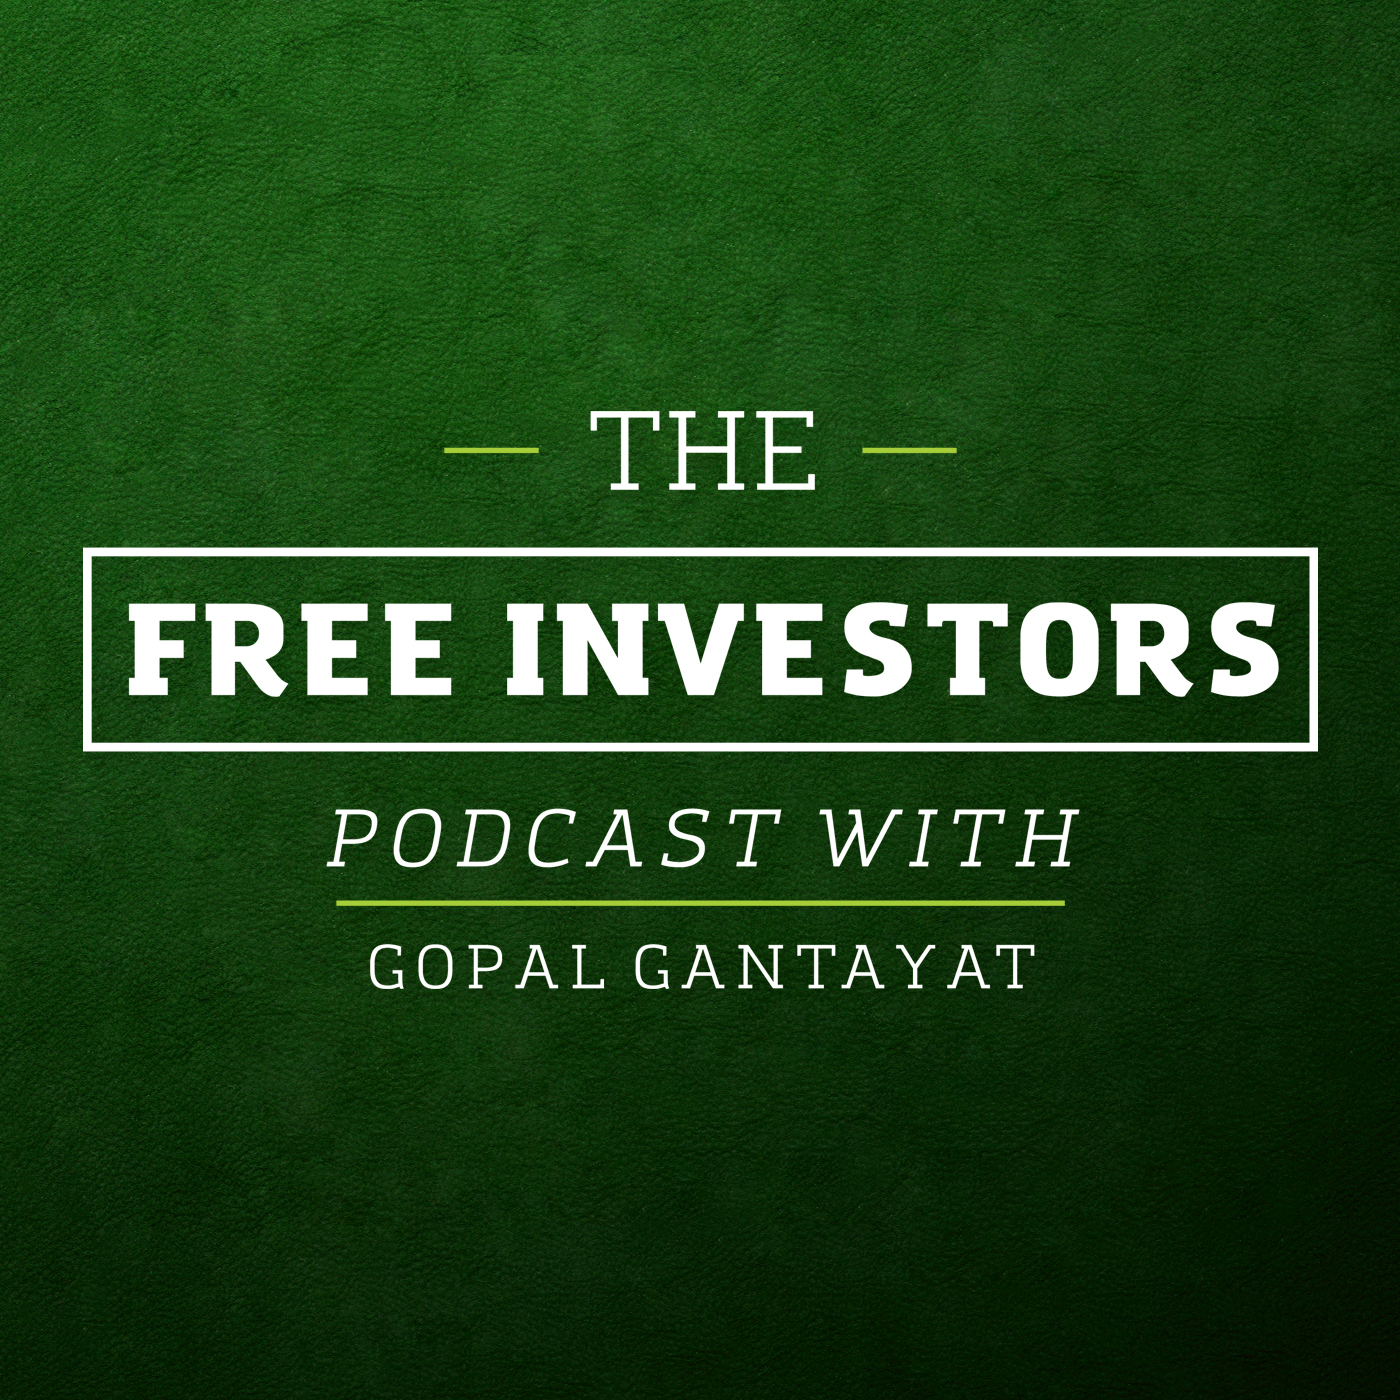 The Free Investors Podcast: Long-term Investing | Investment Philosophies | Stock Investing | Gopal Gantayat